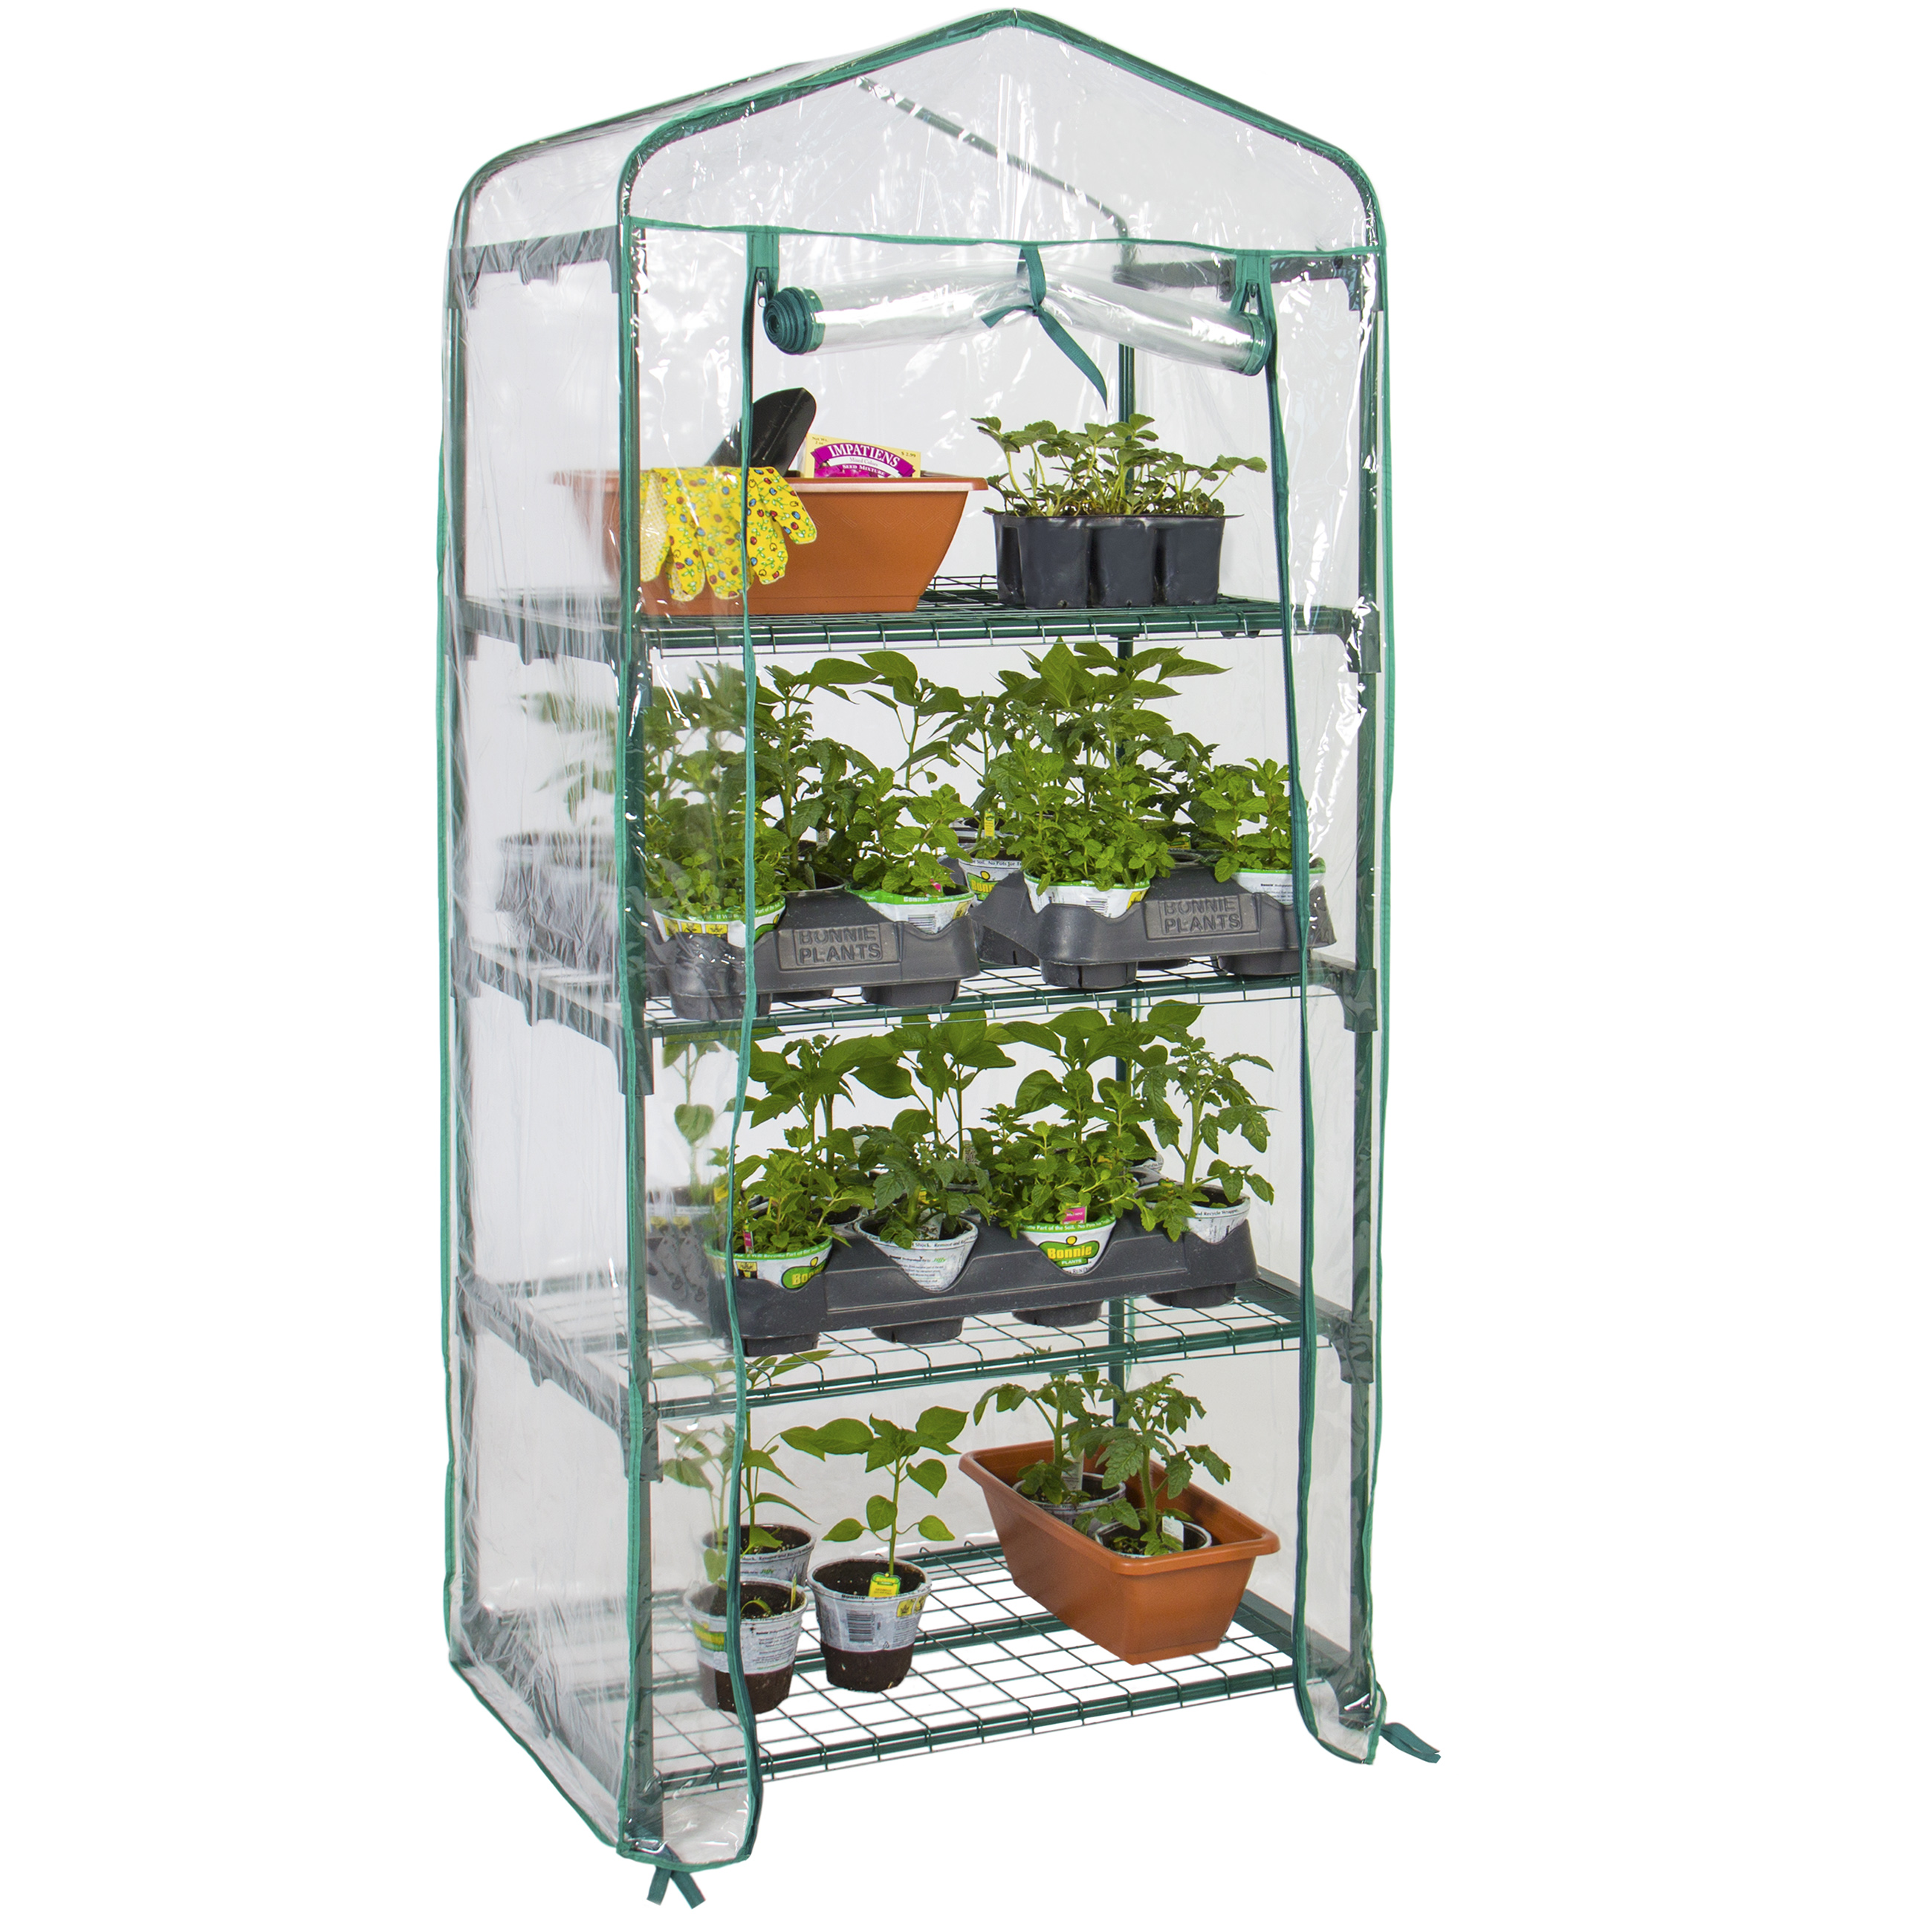 Genial Best Choice Products 27x19x63in 4 Tier Mini Greenhouse W/ Cover And Roll Up